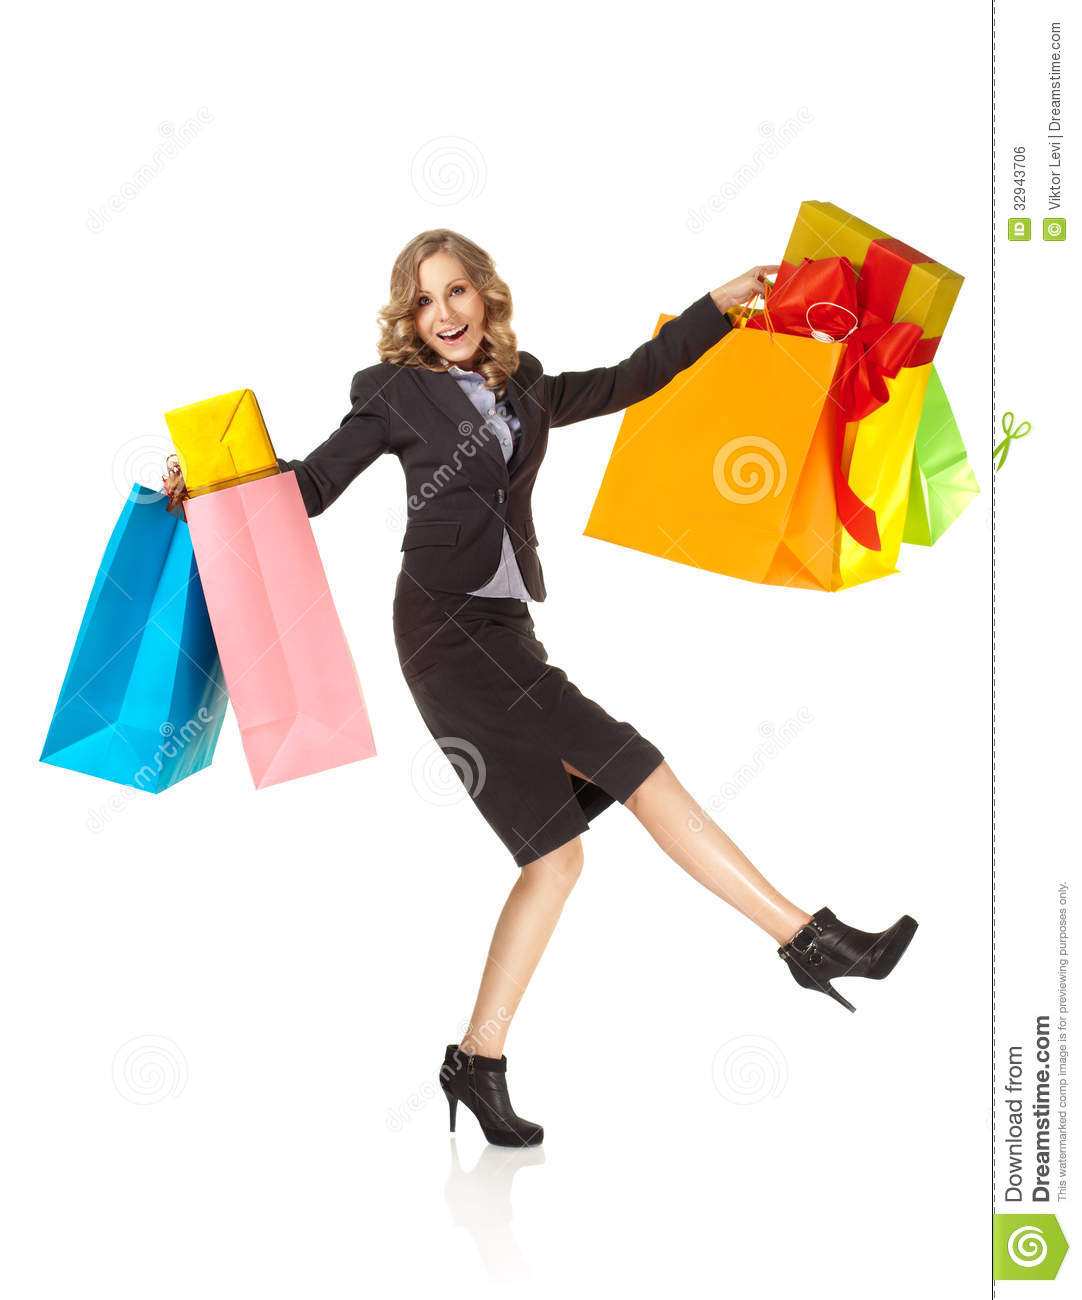 Excited Woman Clipart Excited Woman Happy Shopping